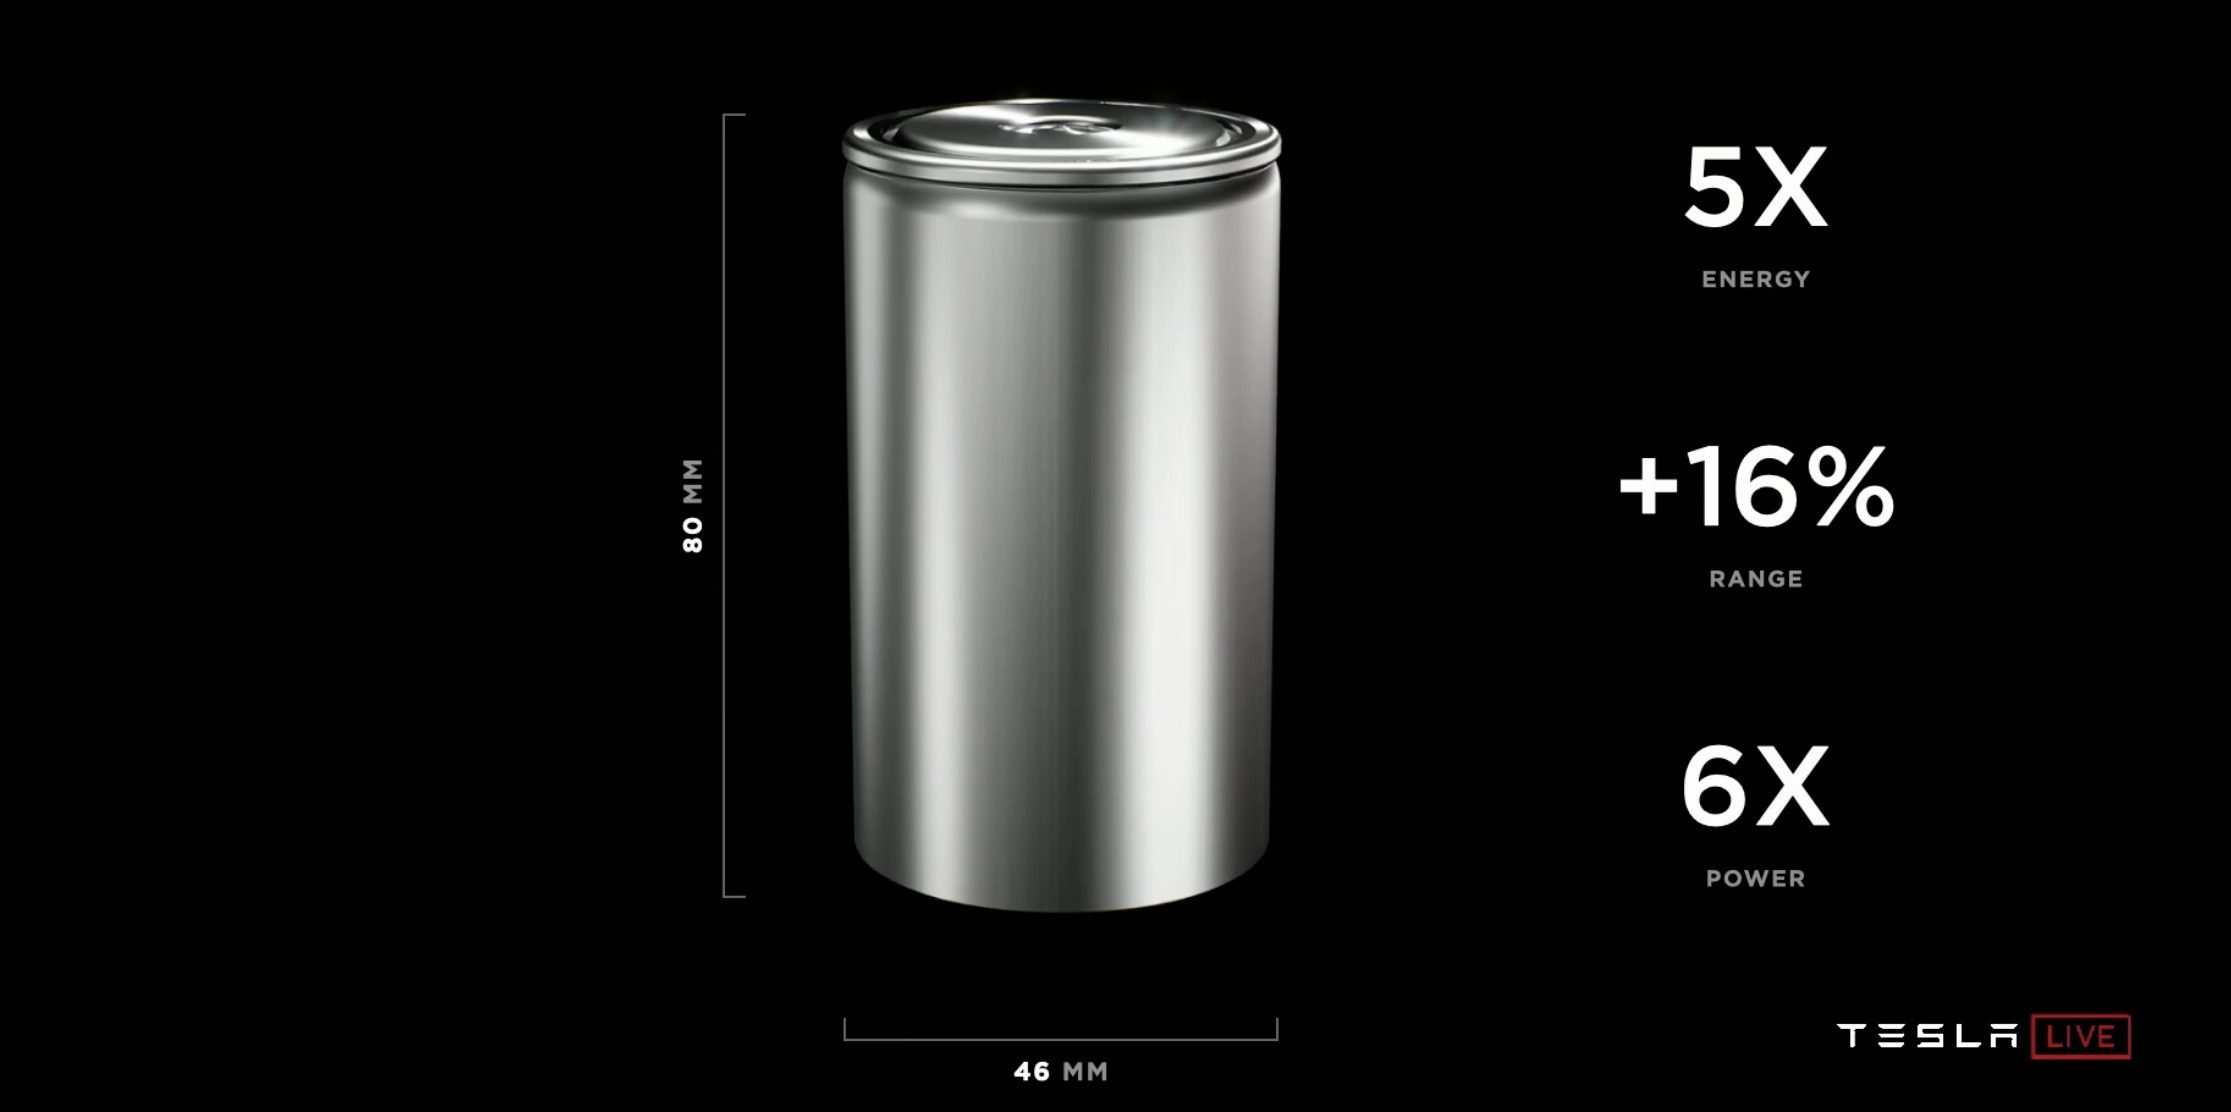 Tesla unveils new 4680 battery cell: bigger, 6x power, and 5x energy -  Electrek